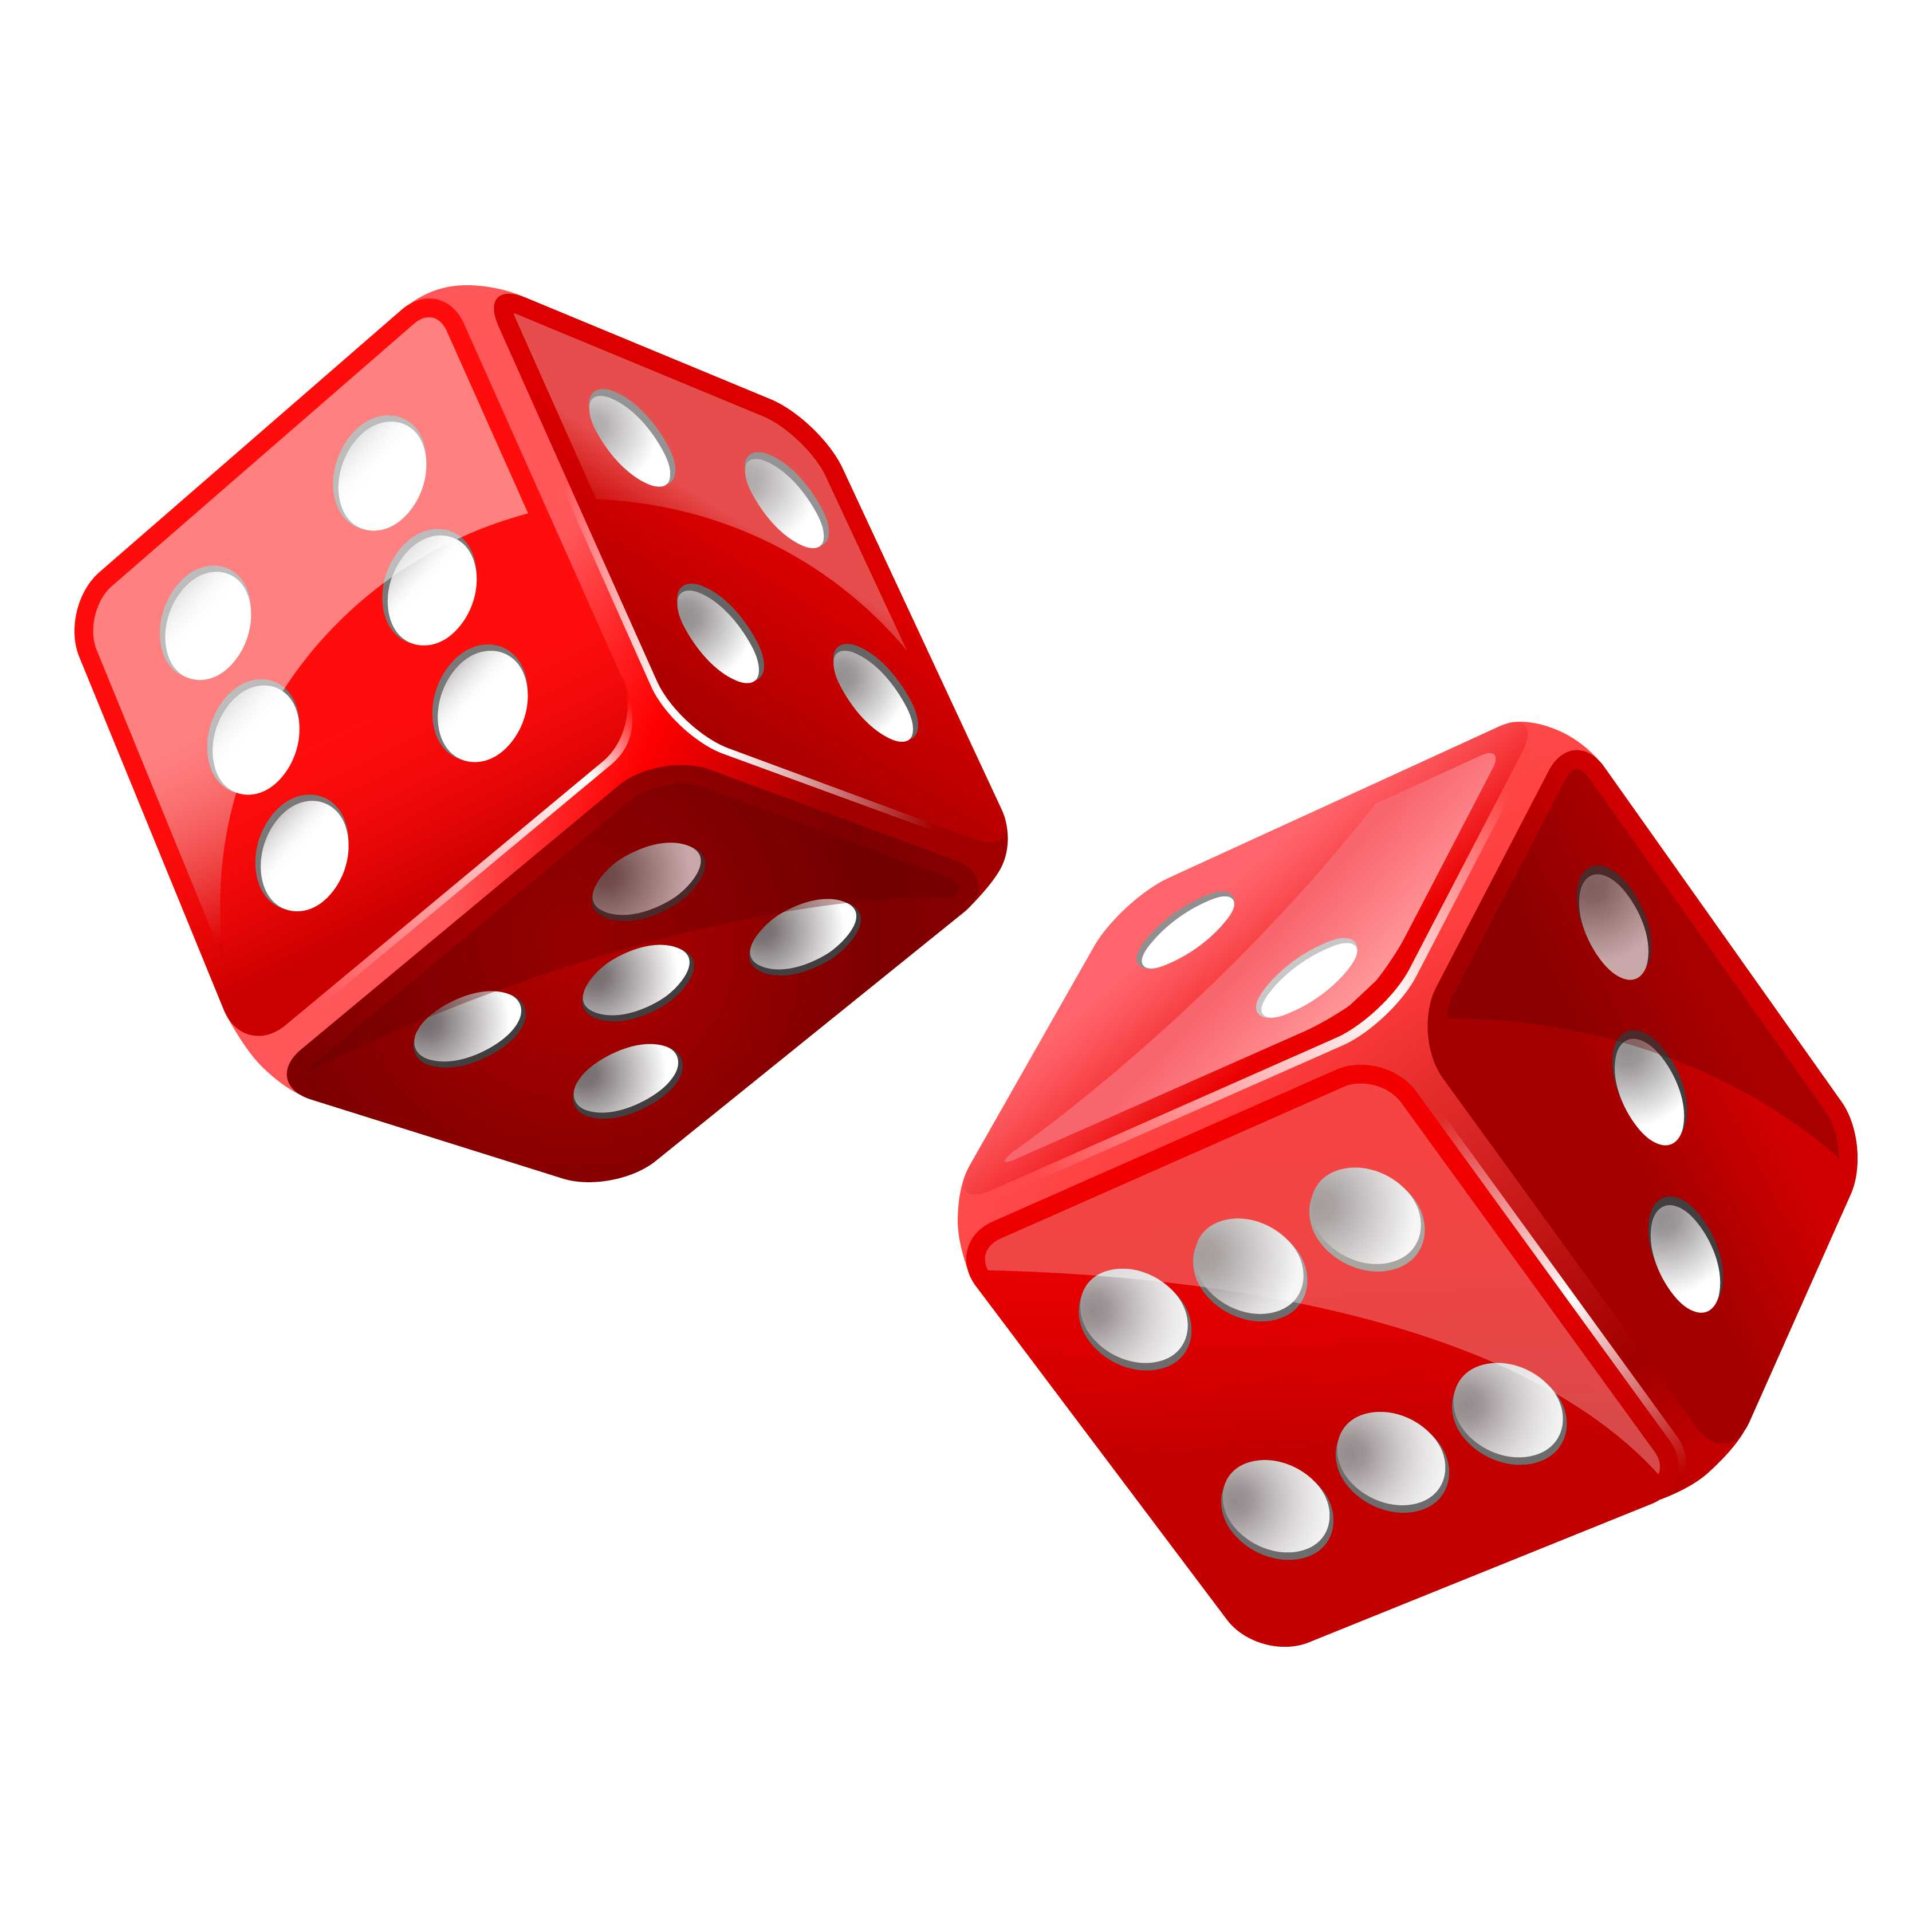 3373x3373 Red Dice Wallpaper 4k Hd Of Laptop Png Clipart